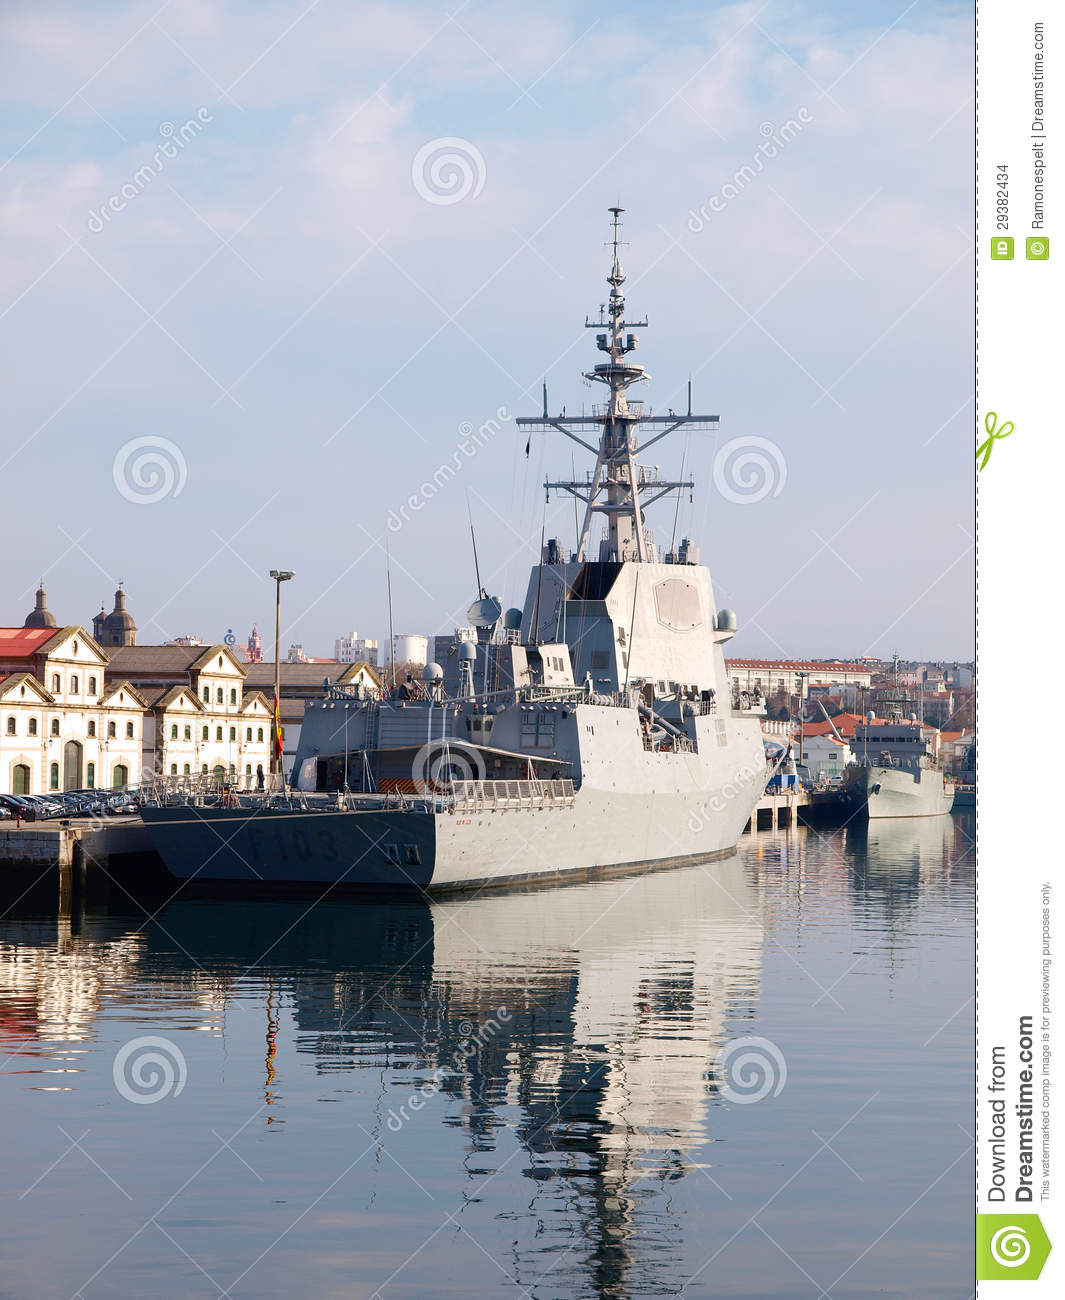 Ferrol Spain  city photos gallery : ... Ferrol, Spain, on February 16, 2013. Blas de Lezo is a spanish warship